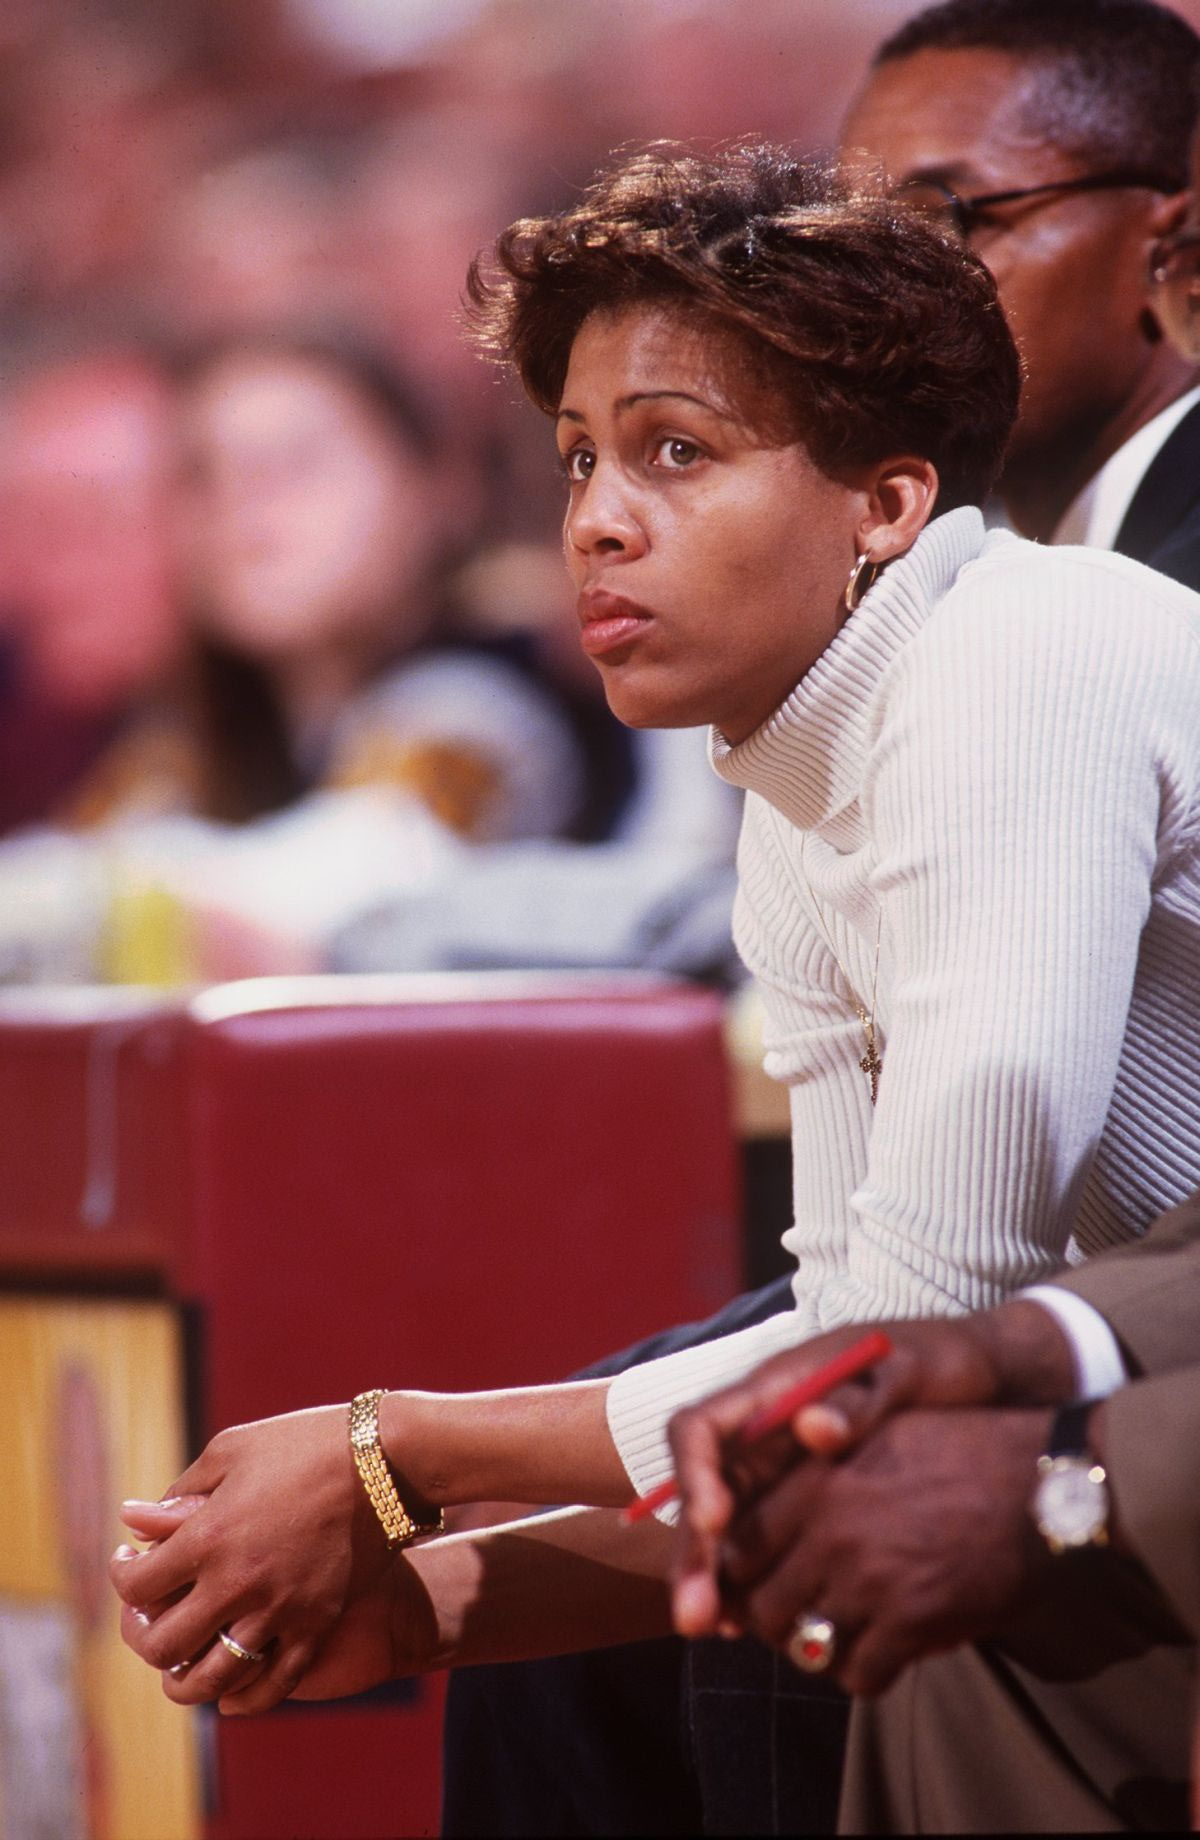 What's Cheryl Miller doing in a place like this? Learning ... Cheryl Miller